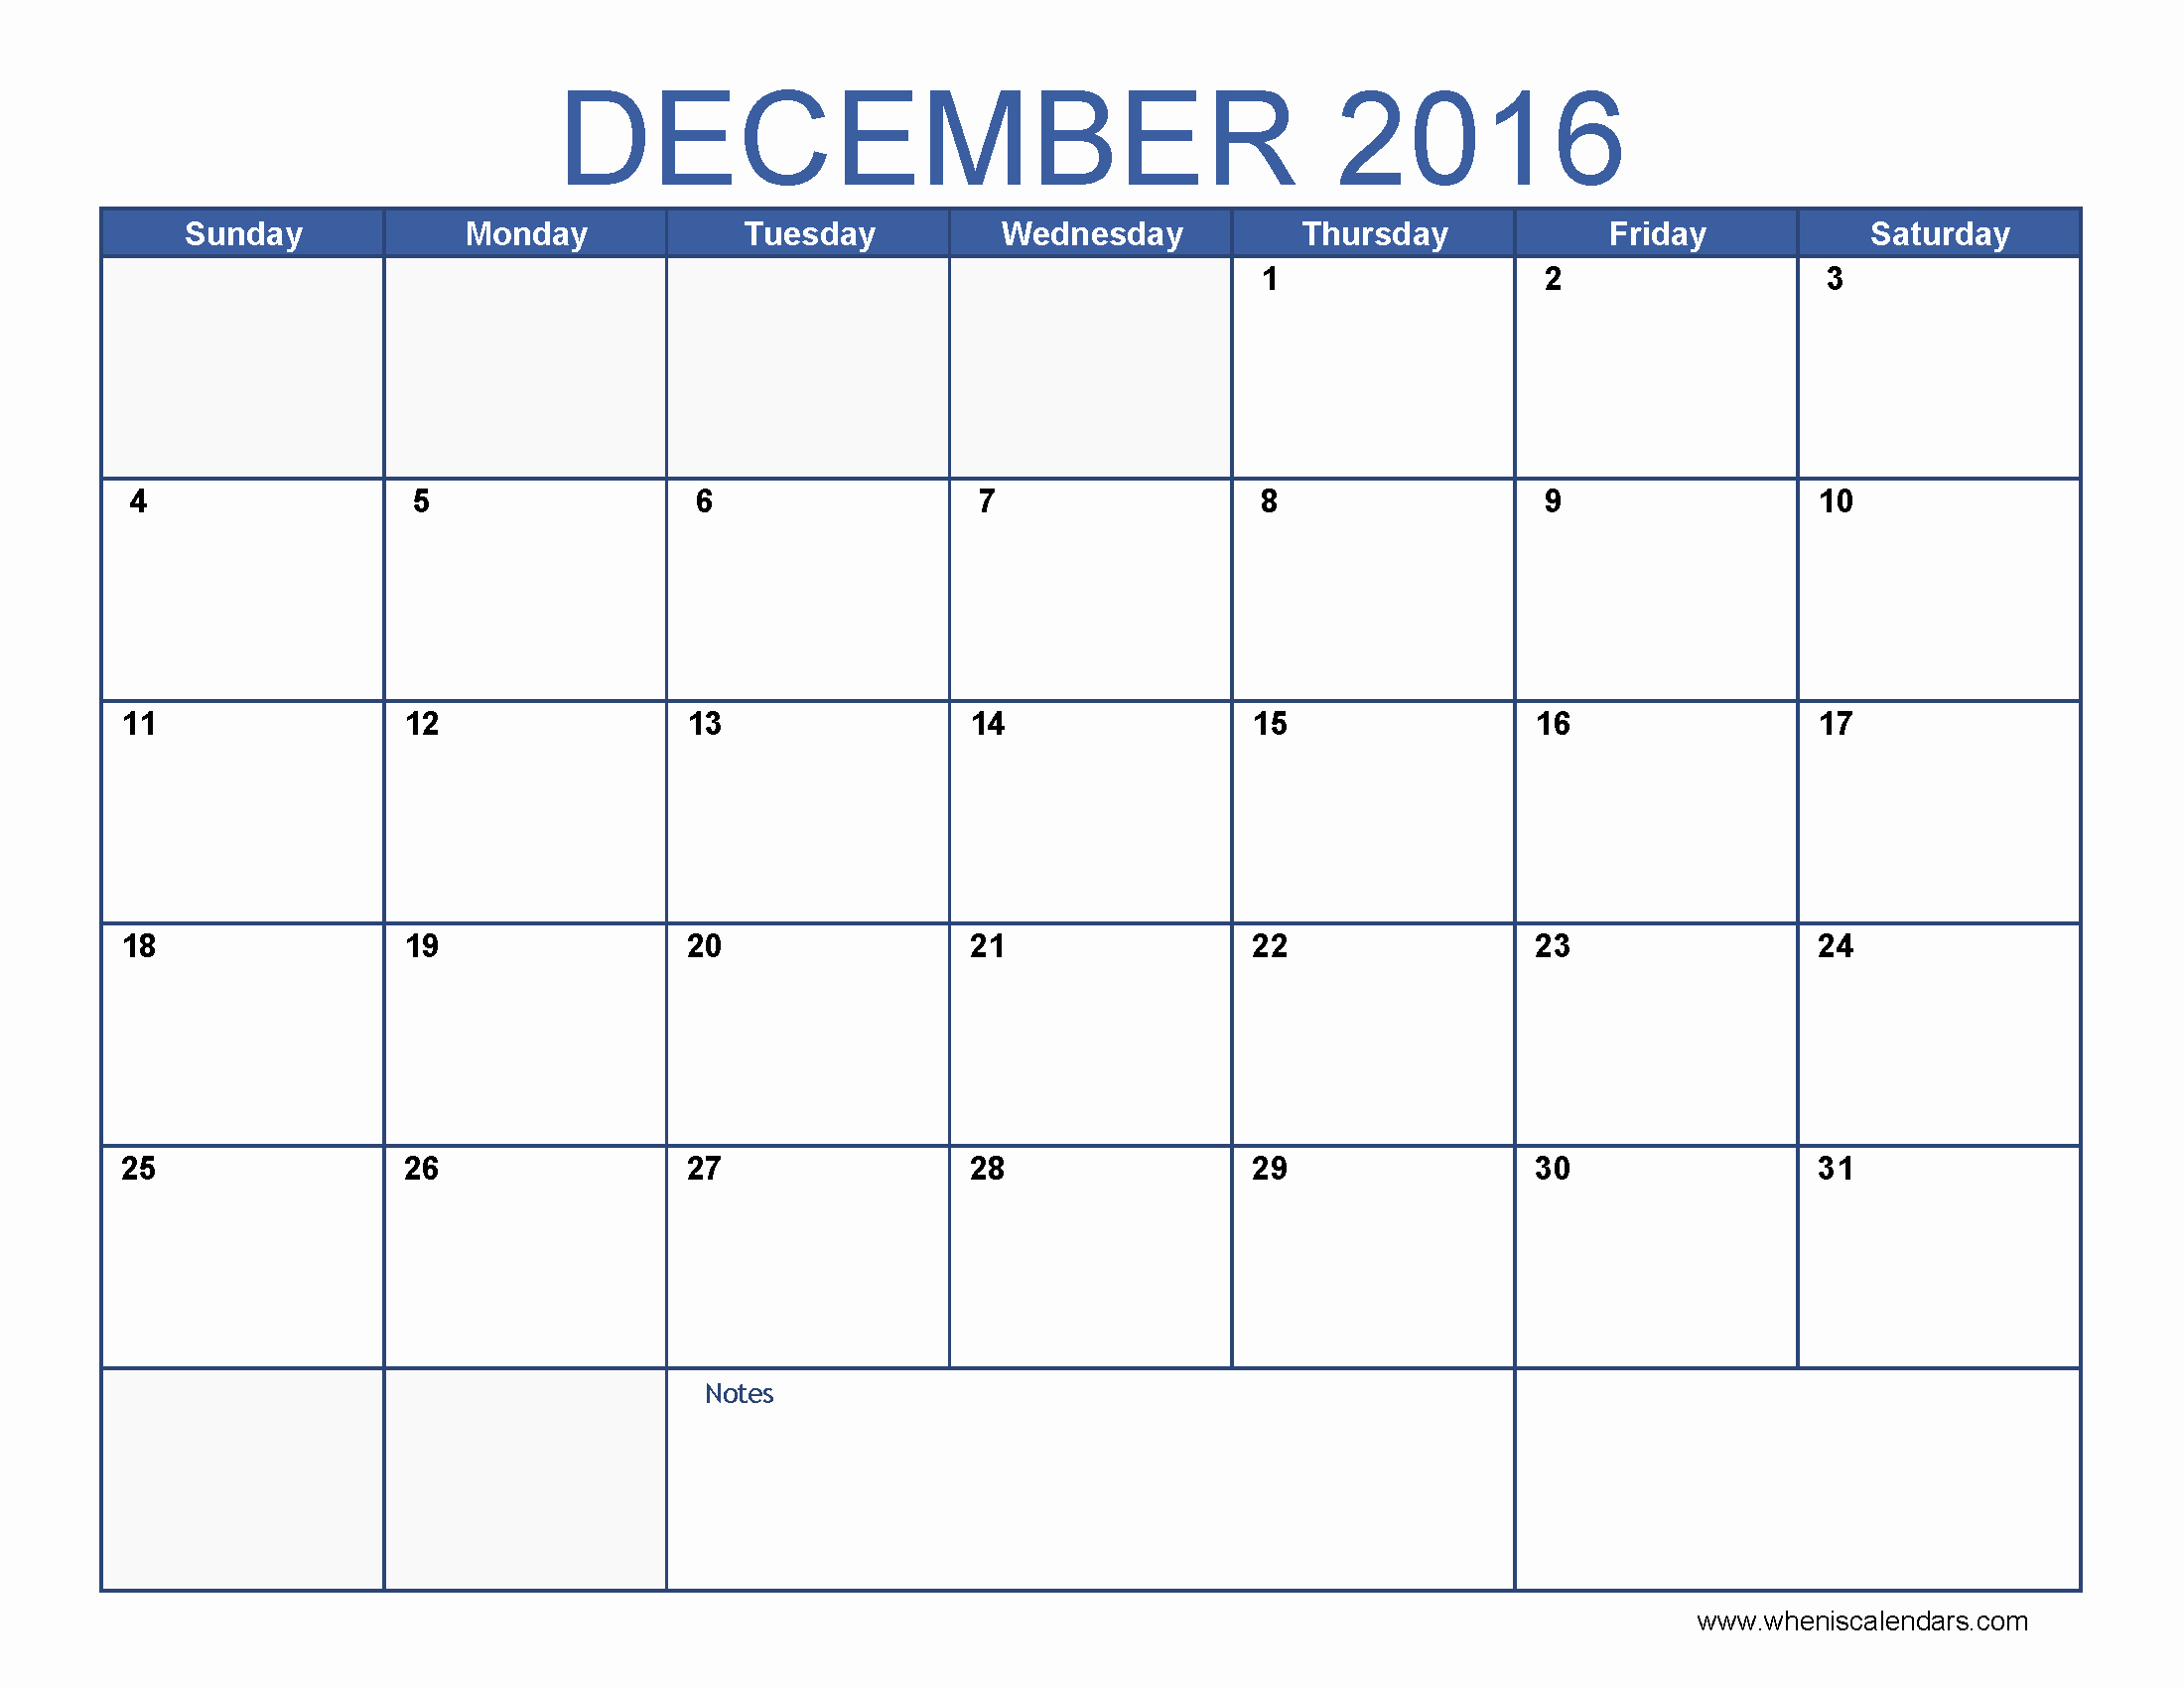 Blank December Calendar 2016 Printable Elegant Blank December Calendar Templates 2016 Printable Word Pdf